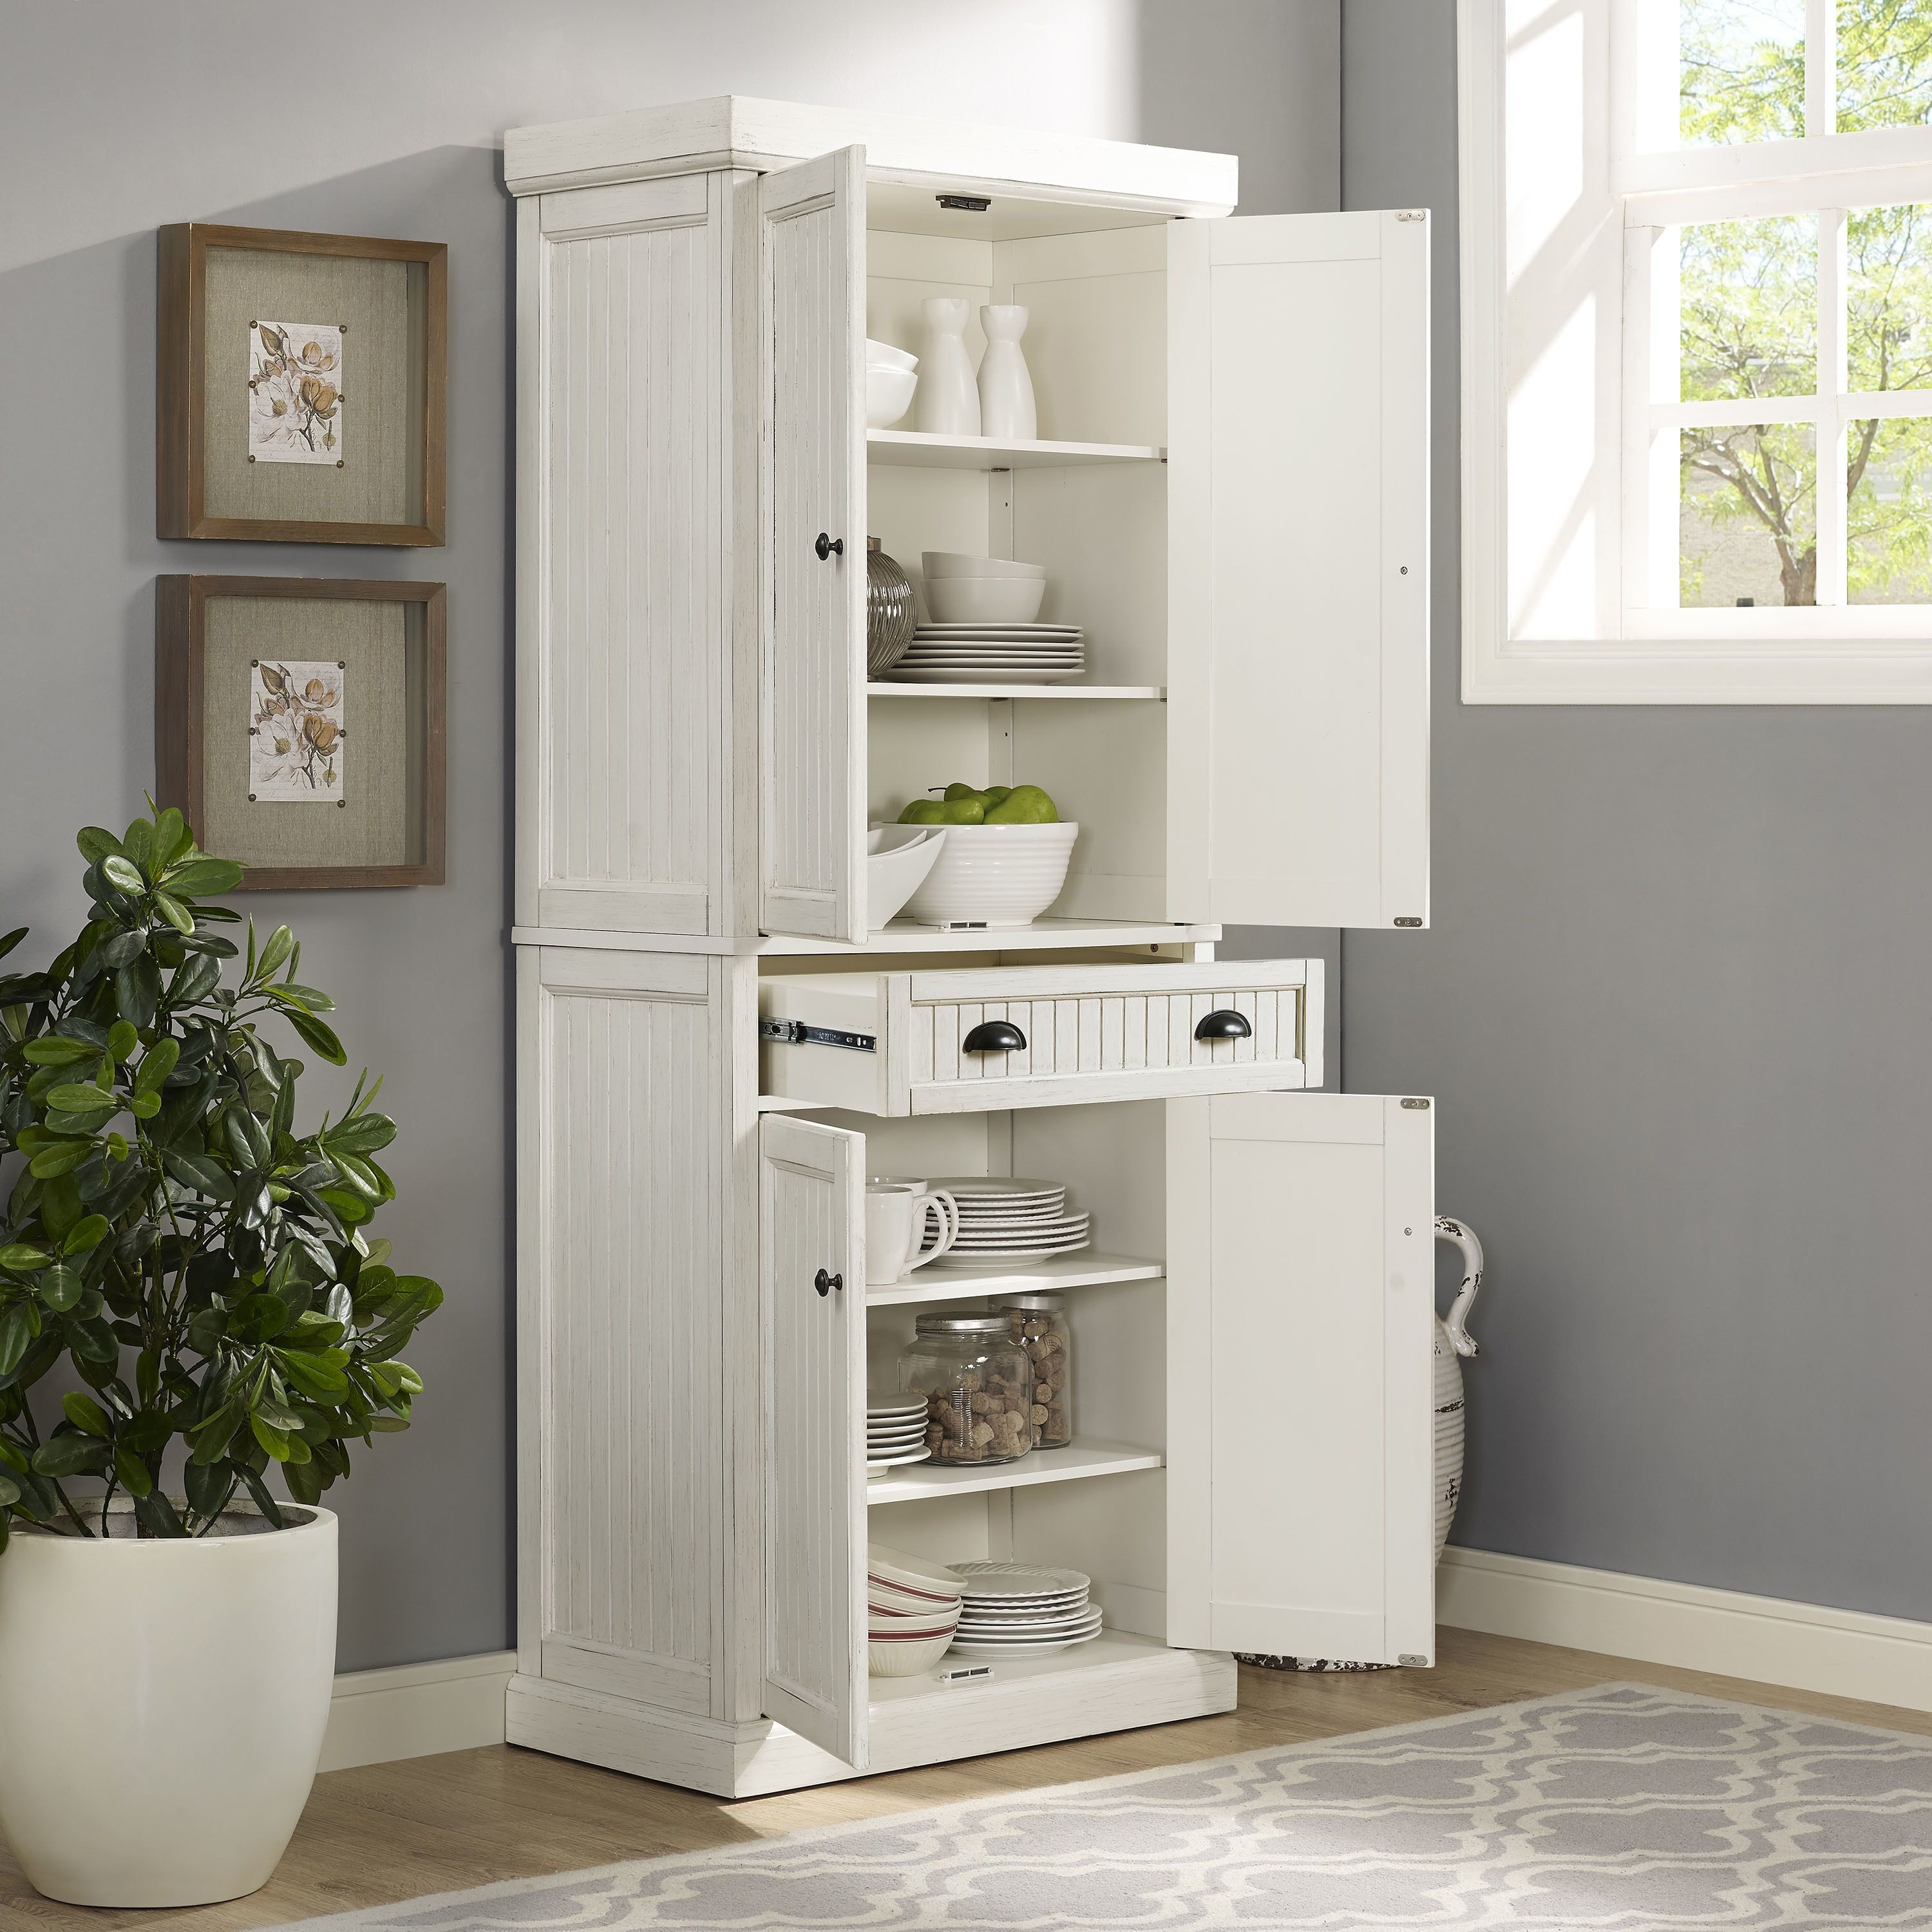 Crosley Furniture Seaside Kitchen Pantry in Distressed White Finish ...